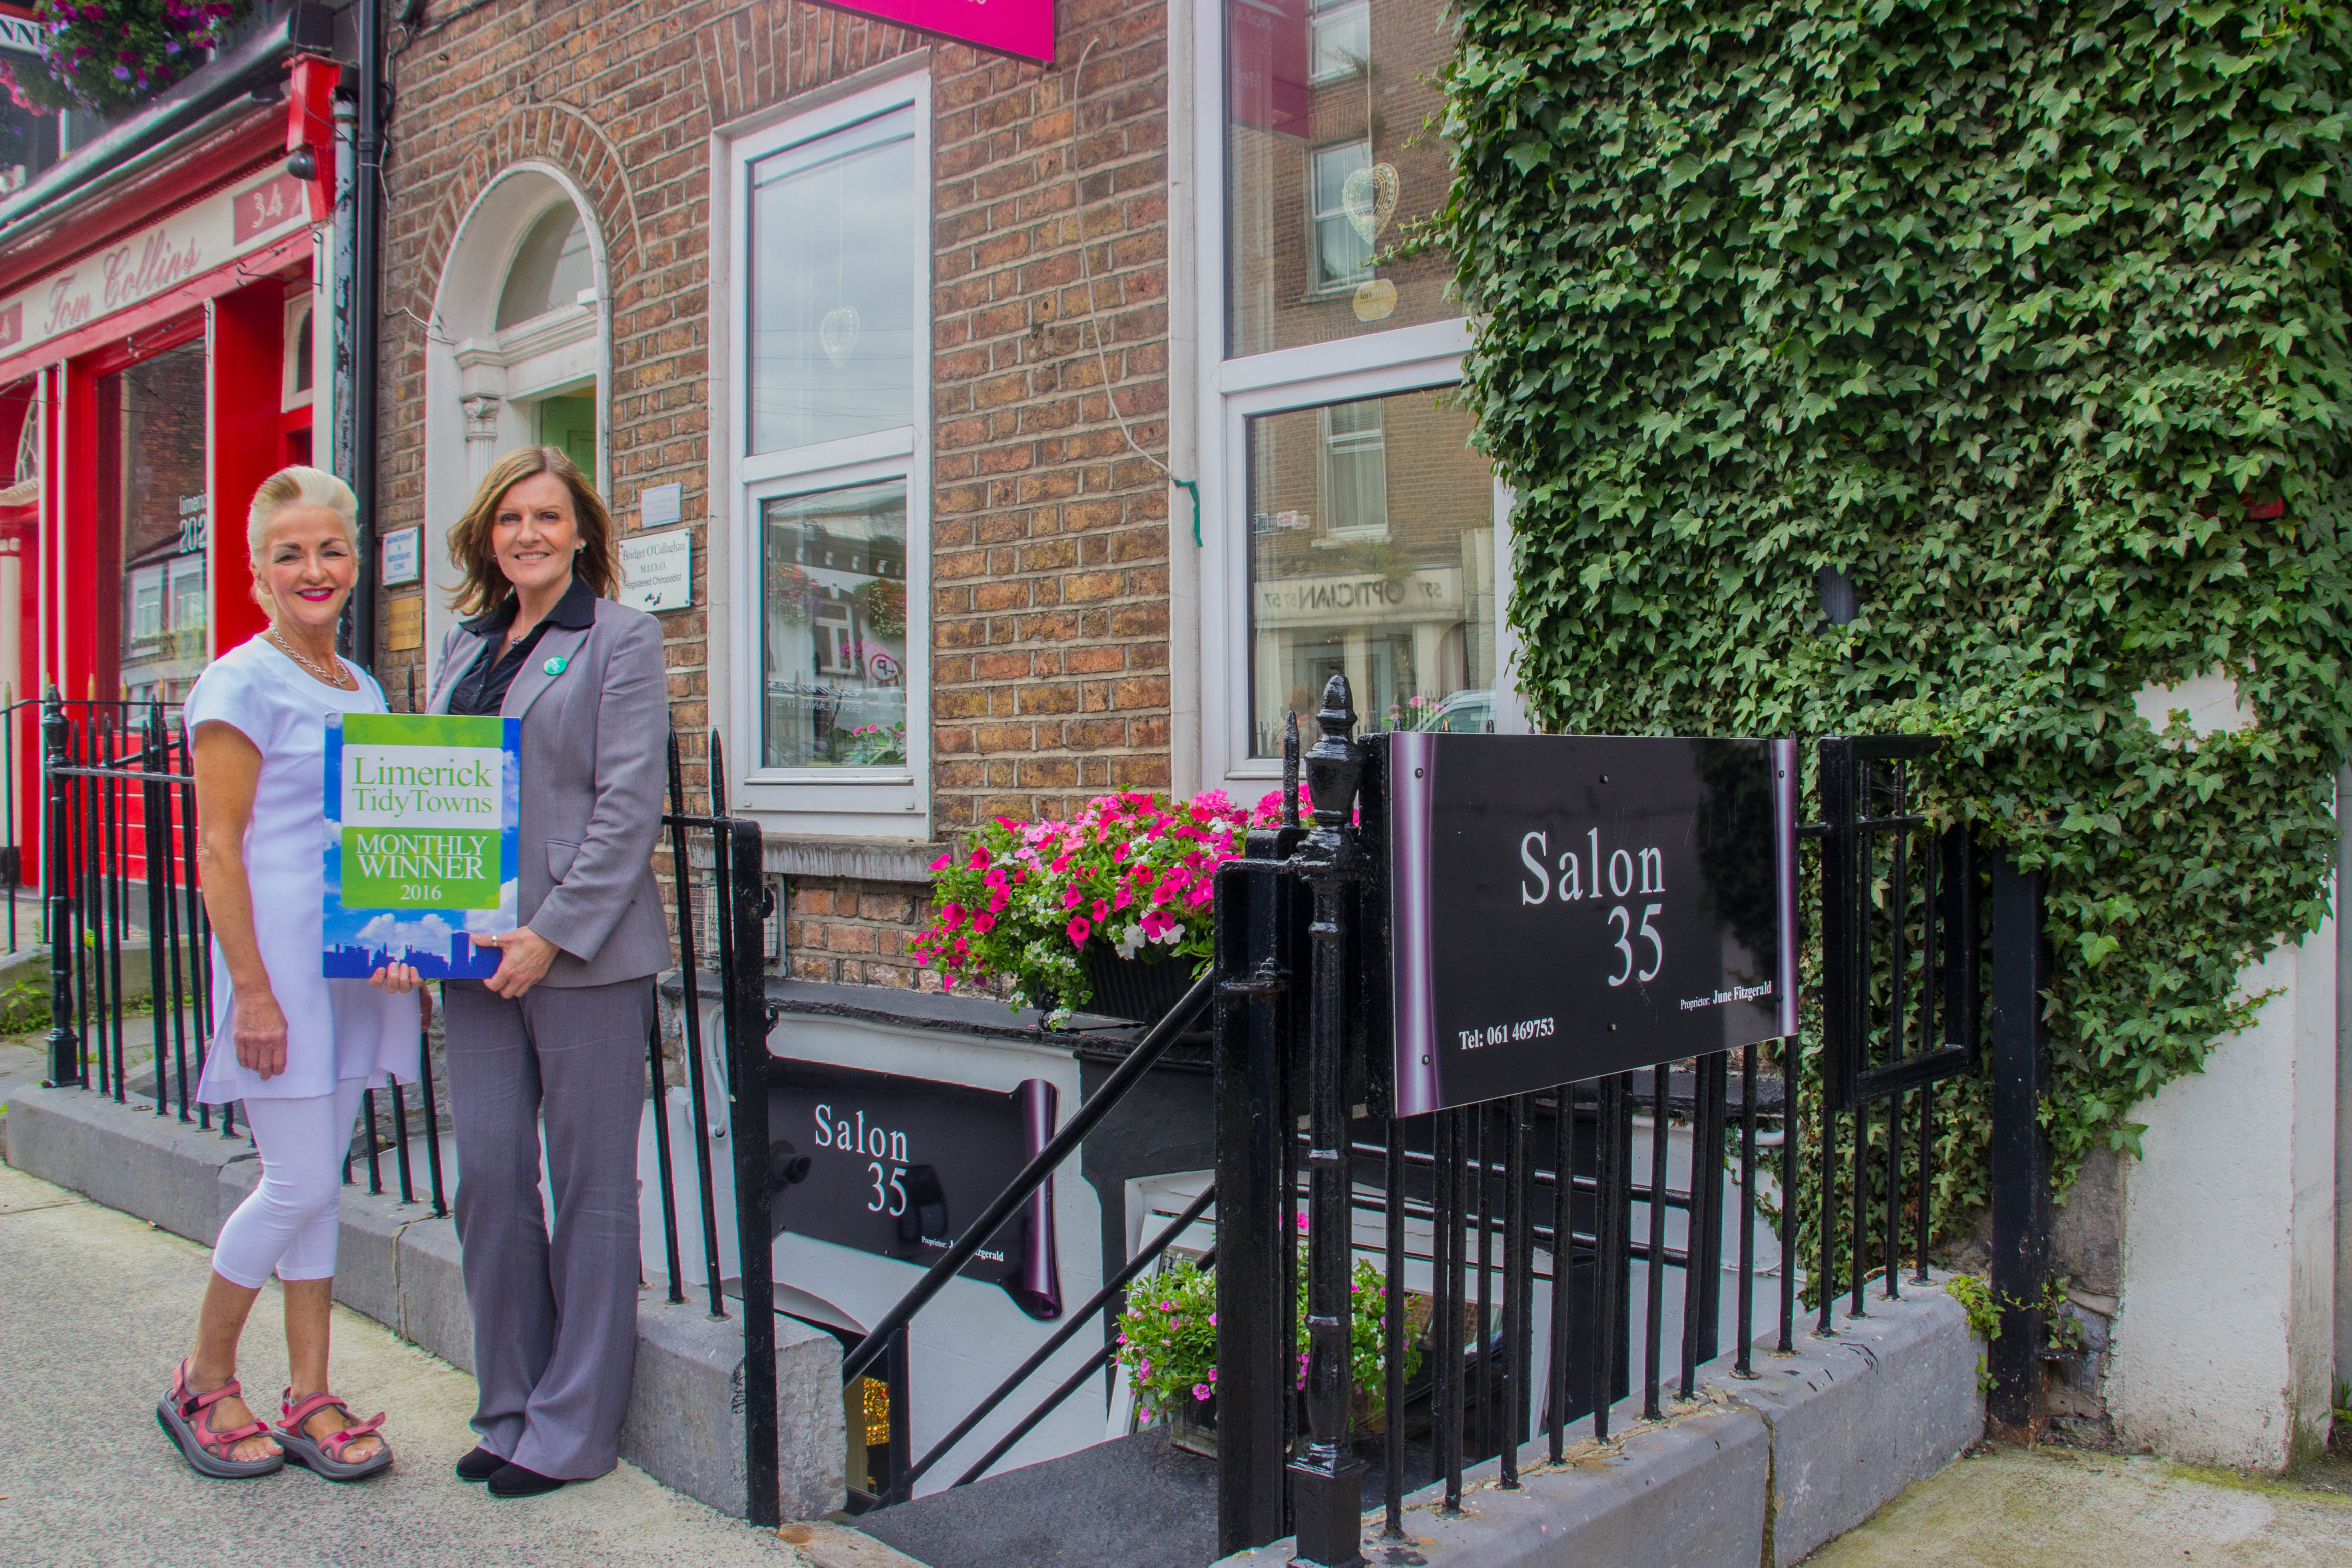 Limerick Tidy Towns award July 2016, Maura O'Neill of Limerick Tidy Towns with July winner June Fitzgerald of Salon 35, Cecil Street. Picture by Cian Reinhard